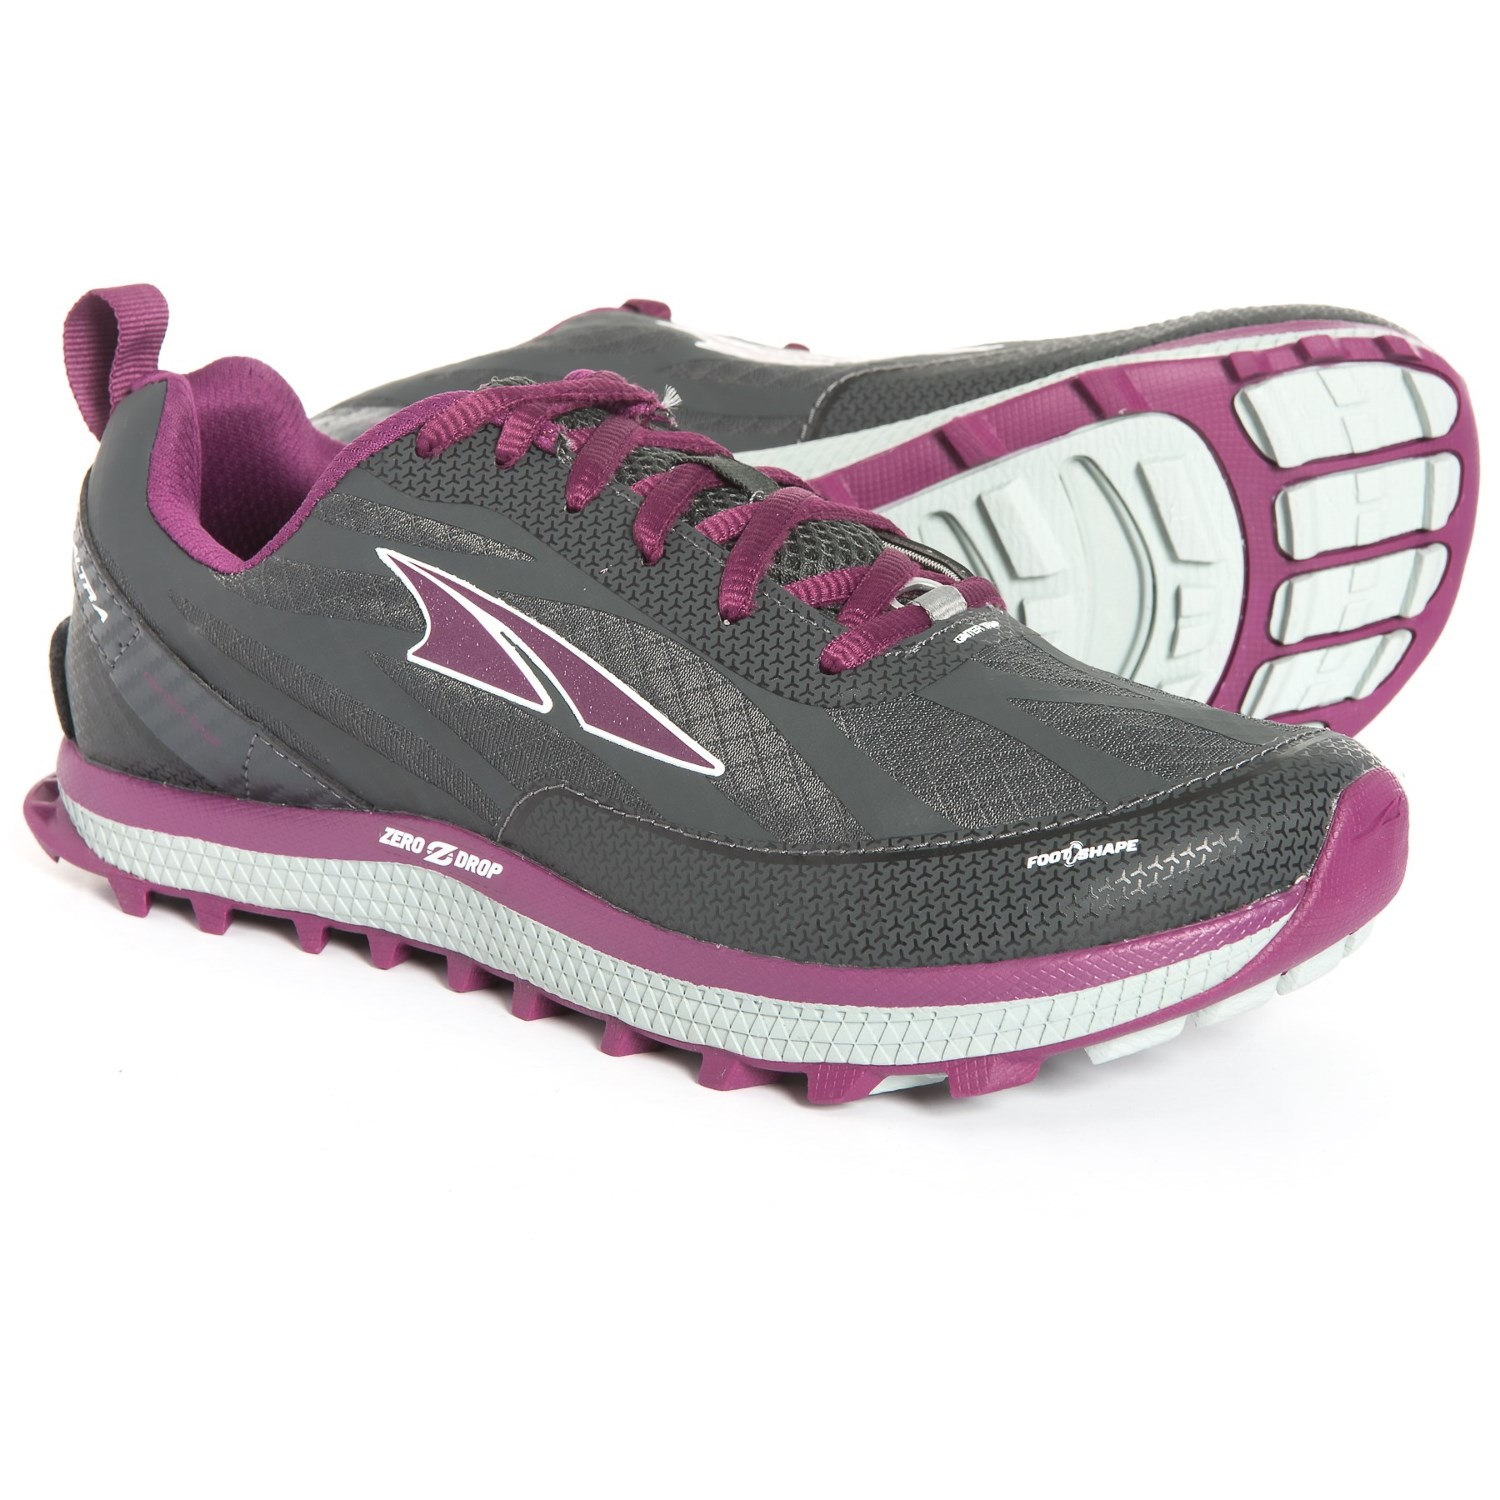 new product bcd8b 147ad Altra Superior 3.5 Trail Running Shoes (For Women)